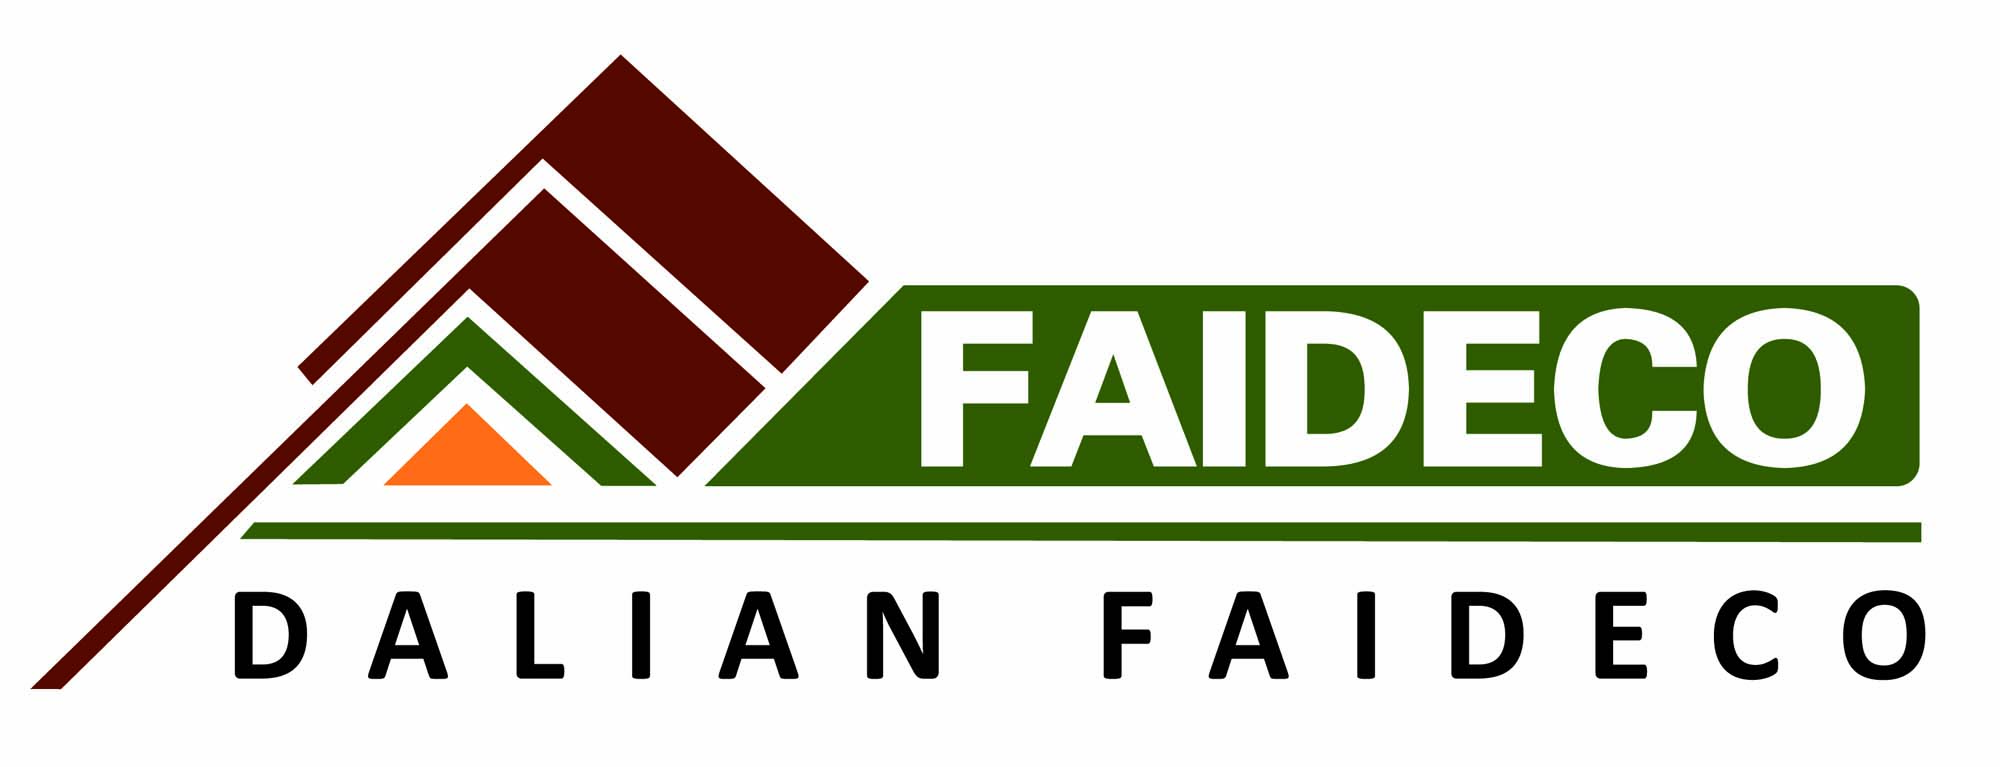 DALIAN FAIDECO ARTS AND CRAFTS CO.,LTD.